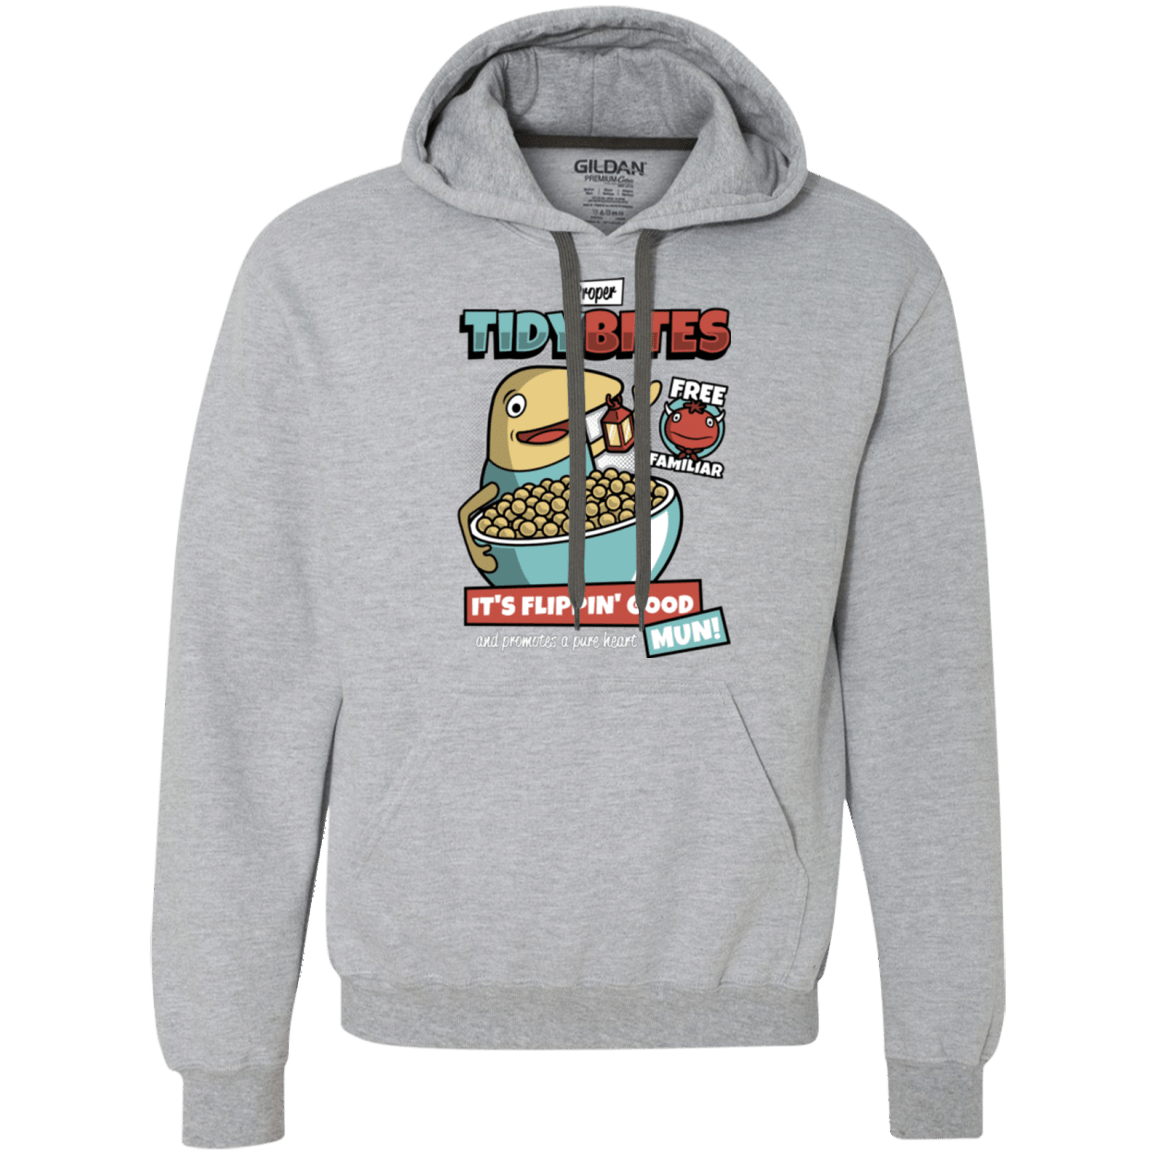 Sweatshirts Sport Grey / Small PROPER TIDY BITES Premium Fleece Hoodie